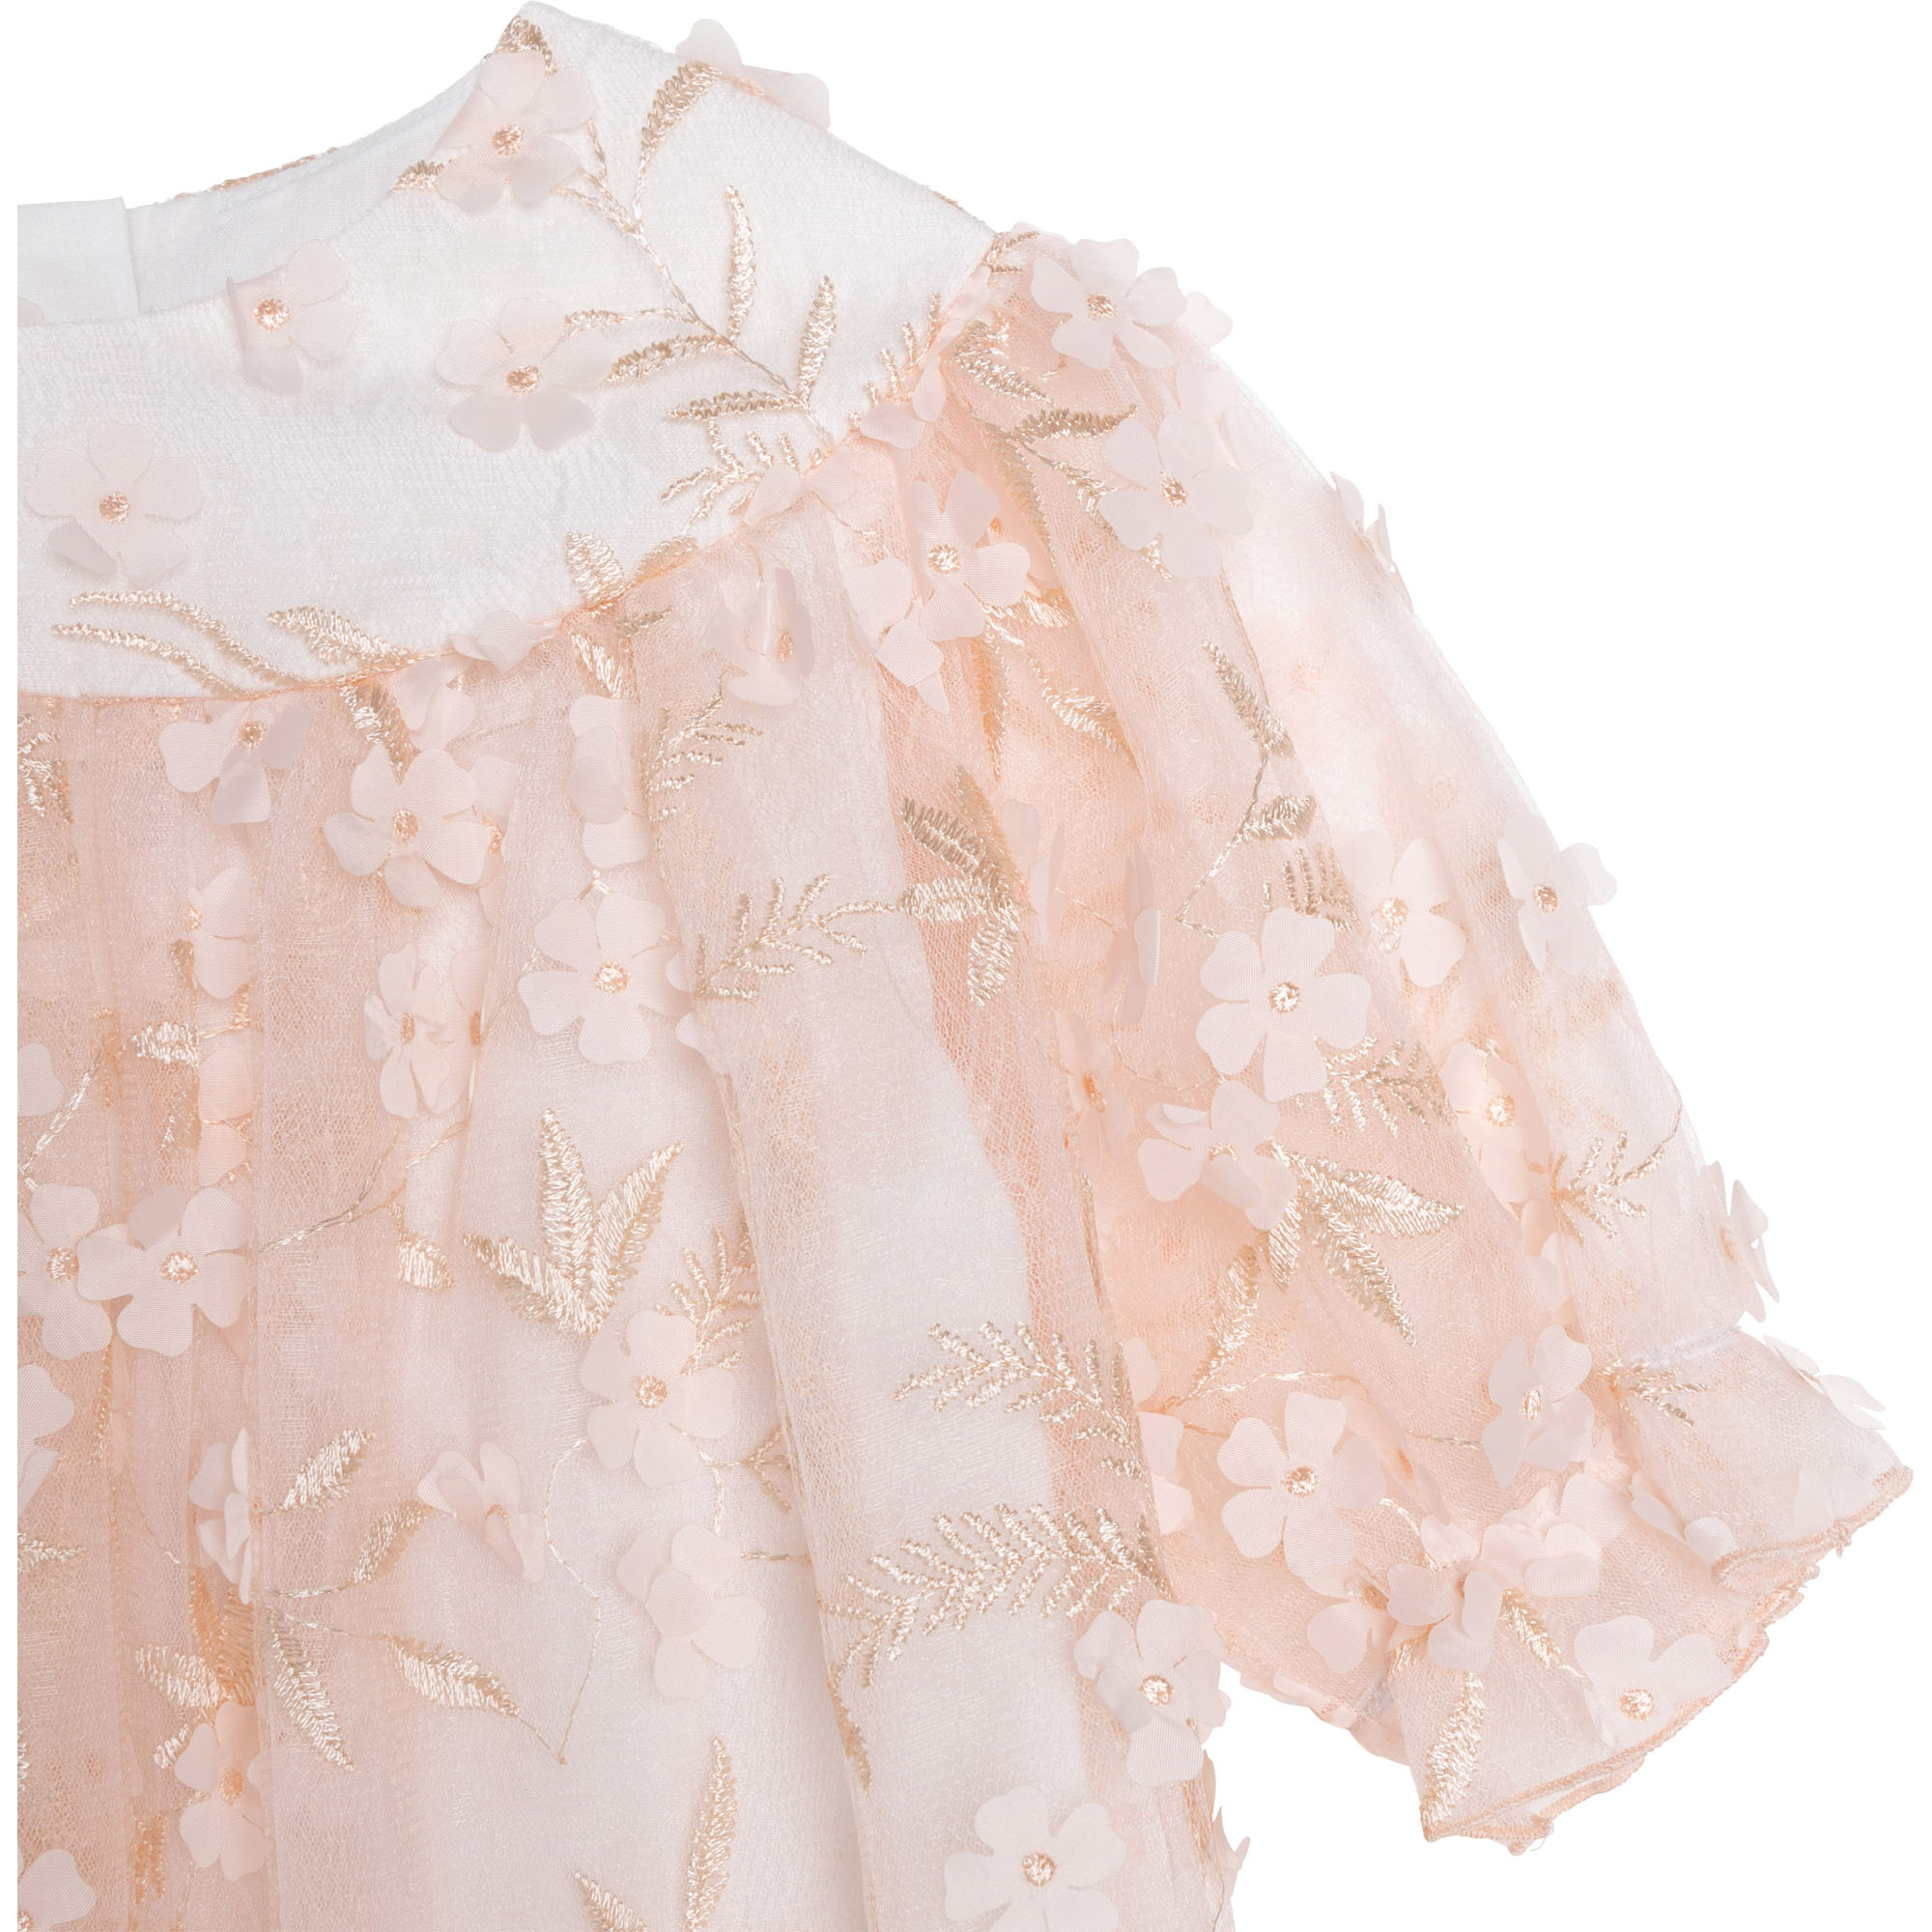 3D-flower lace dress CHARABIA for GIRL